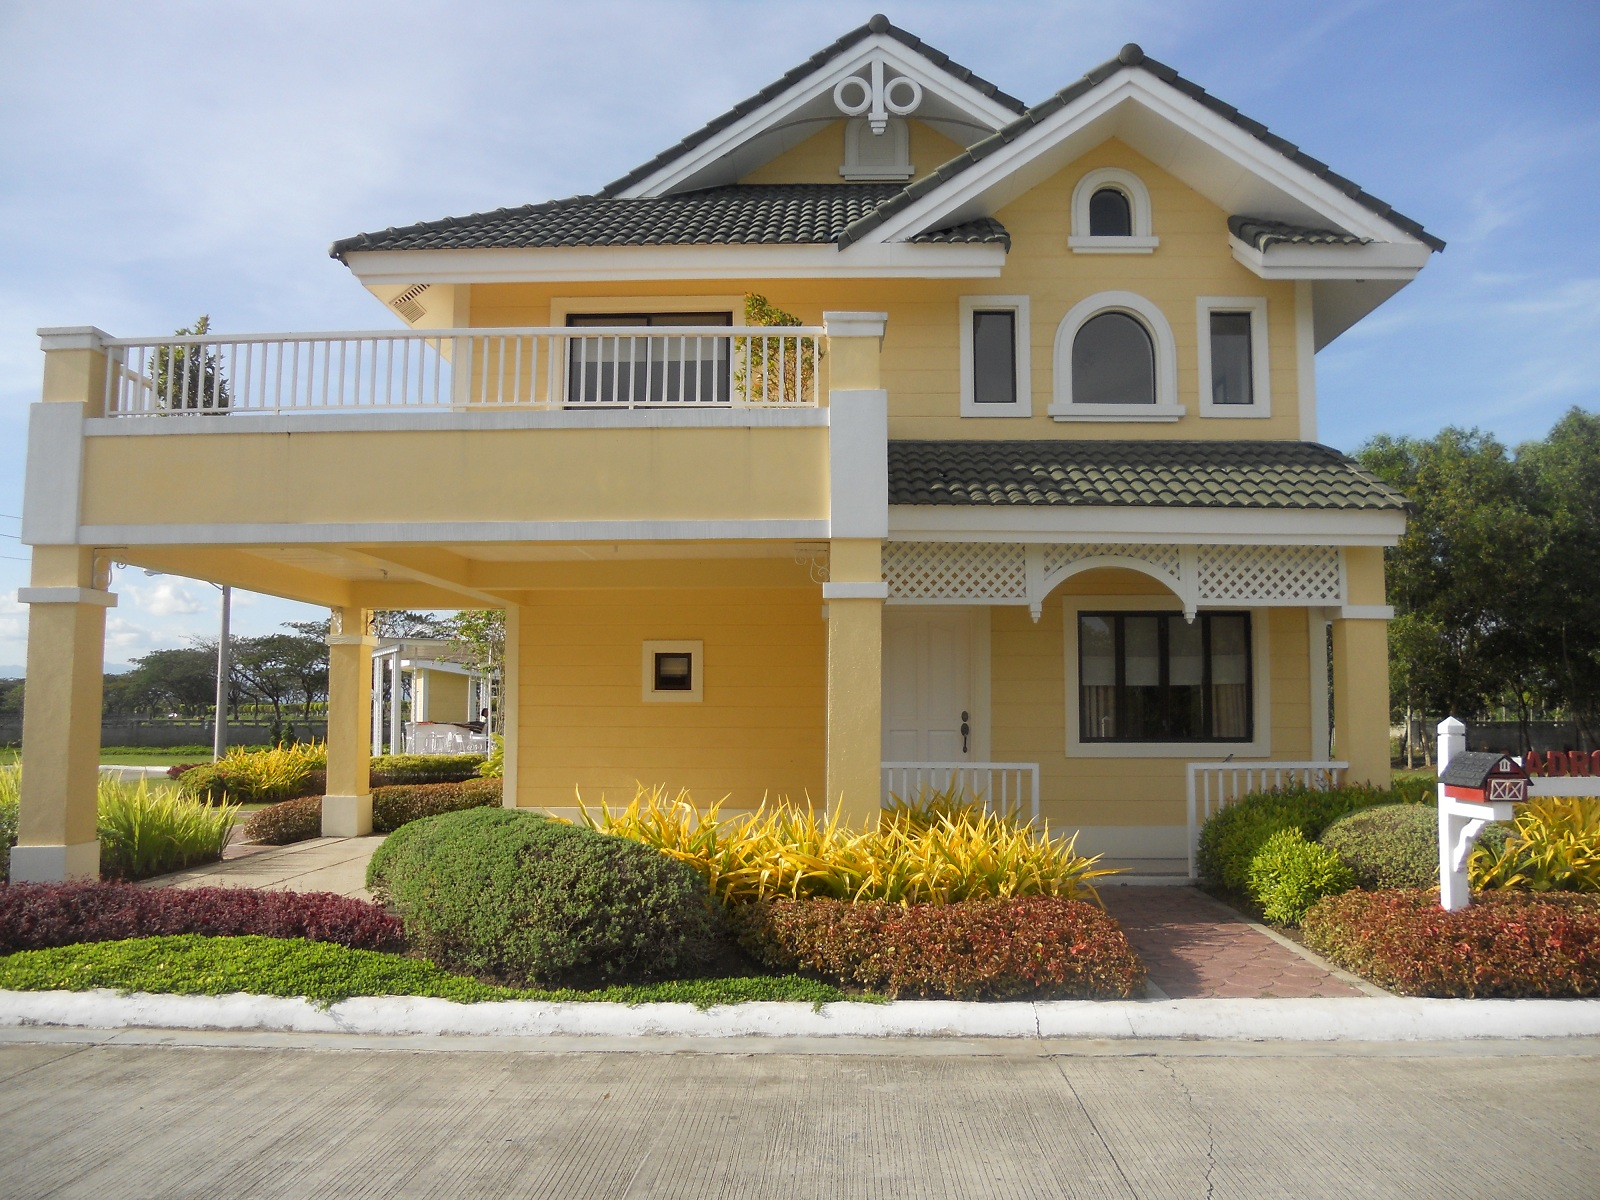 Lladro model house of Savannah Crest Iloilo by Camella Homes